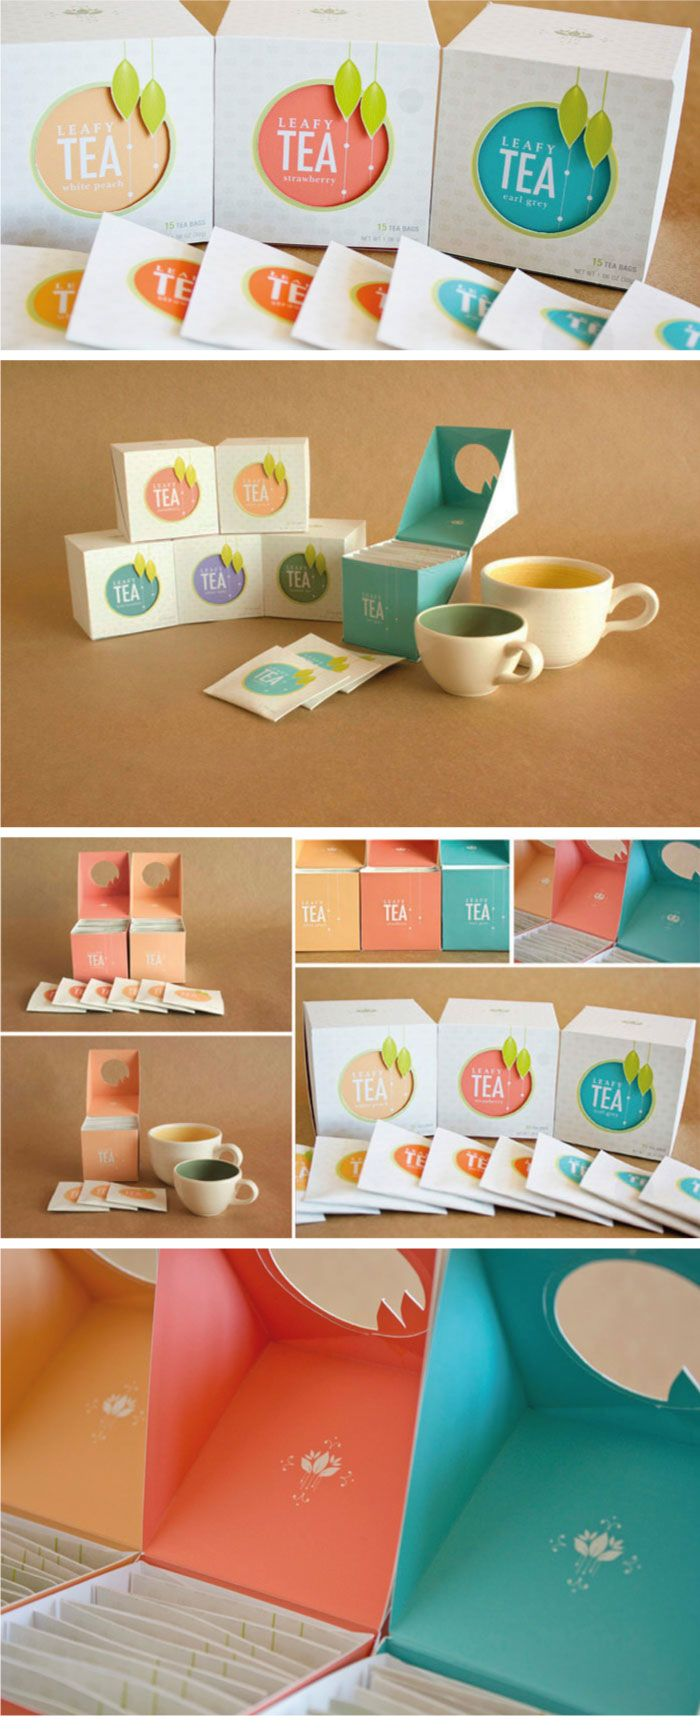 More branding: a different way to think about tea. This is clean, colorful and bright whereas some tea-related designs focus on the detail of the tea leaves themselves. The balance of bright color and delicate detail is very well done.